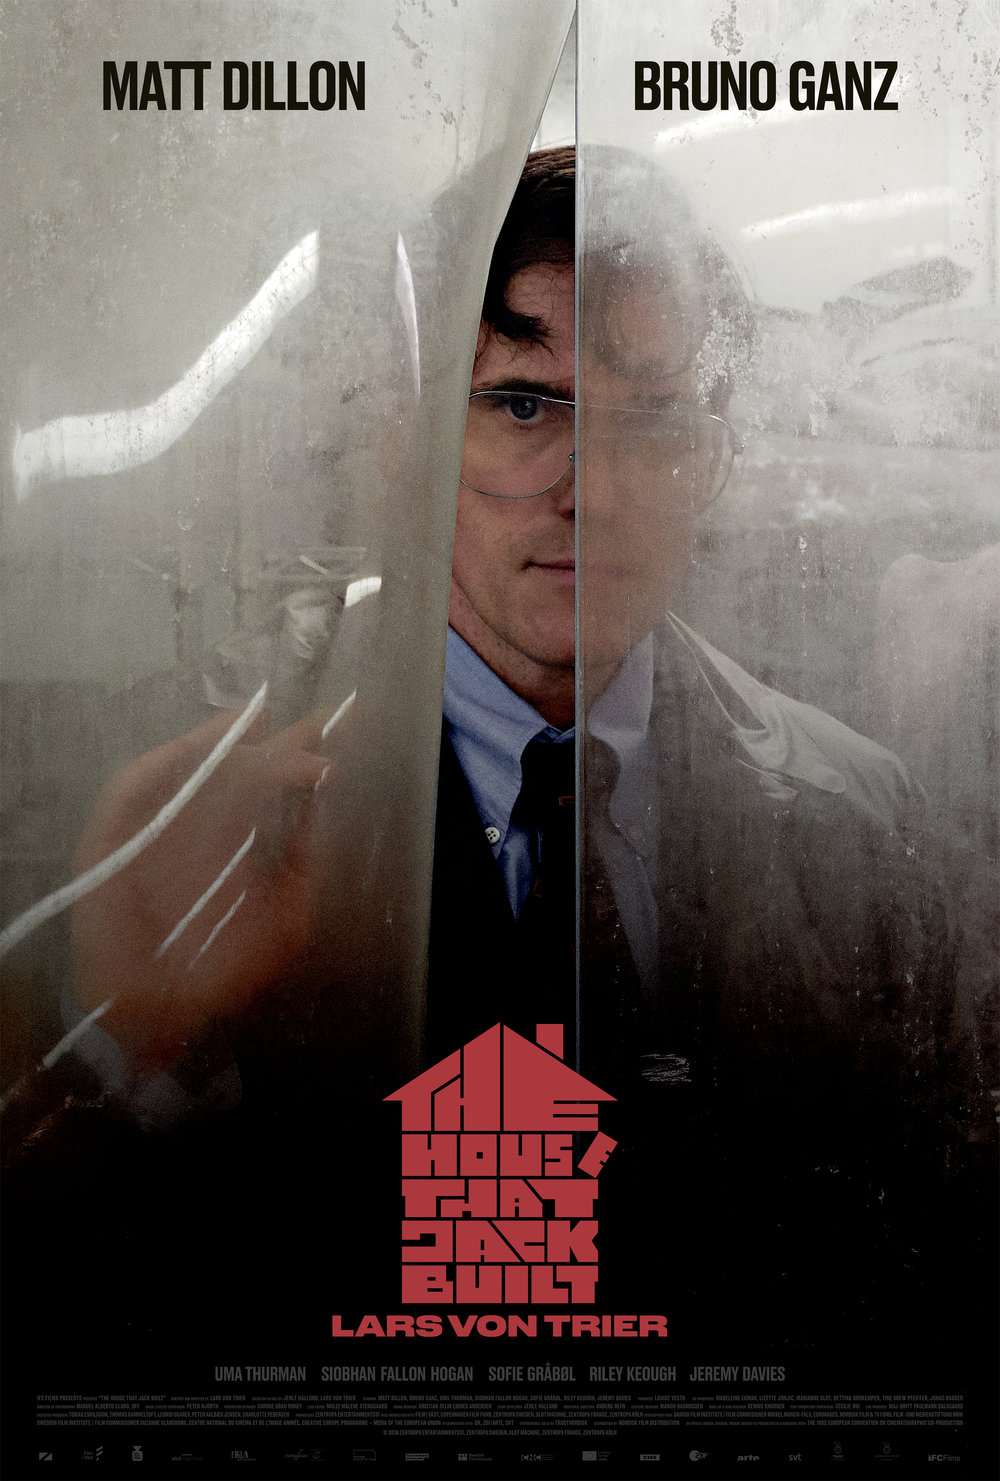 The House that Jack Built (2018) - Directed by: Lars von TrierStarring: Matt Dillon, Bruno Ganz, Uma Thurman, Riley KeoughRated: RRunning Time: 2 h 32 mTMM Score: 2 stars out of 5STRENGTHS: Matt Dillon, Some WritingWEAKNESSES: Direction, A Majority of the Writing